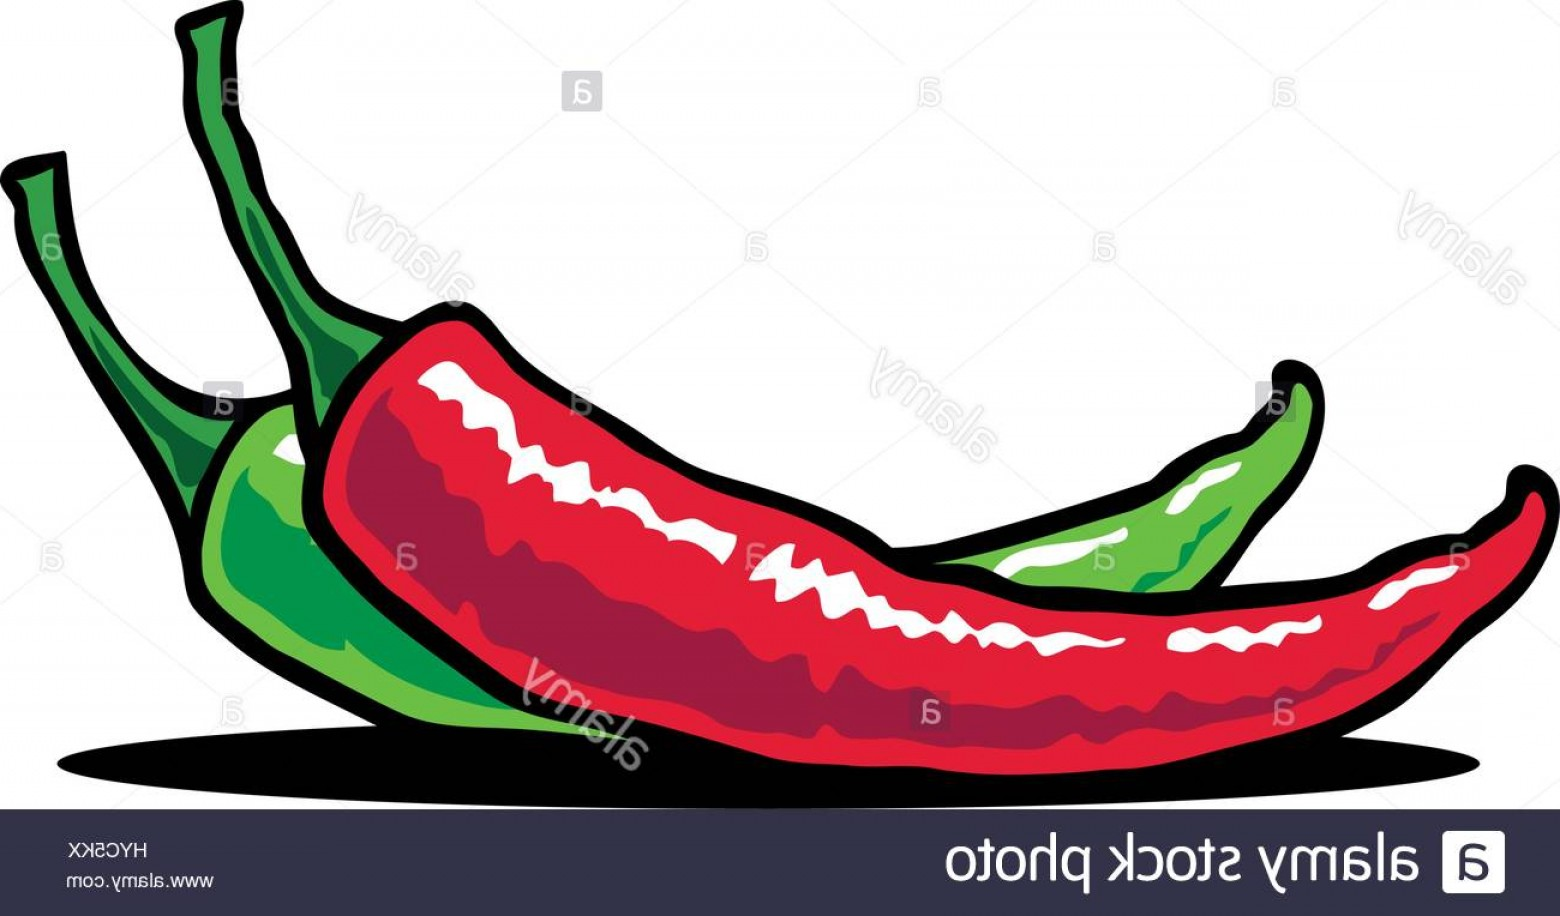 1560x916 Stock Photo Hot Chili Vector Illustration Of A Chili Pepper In